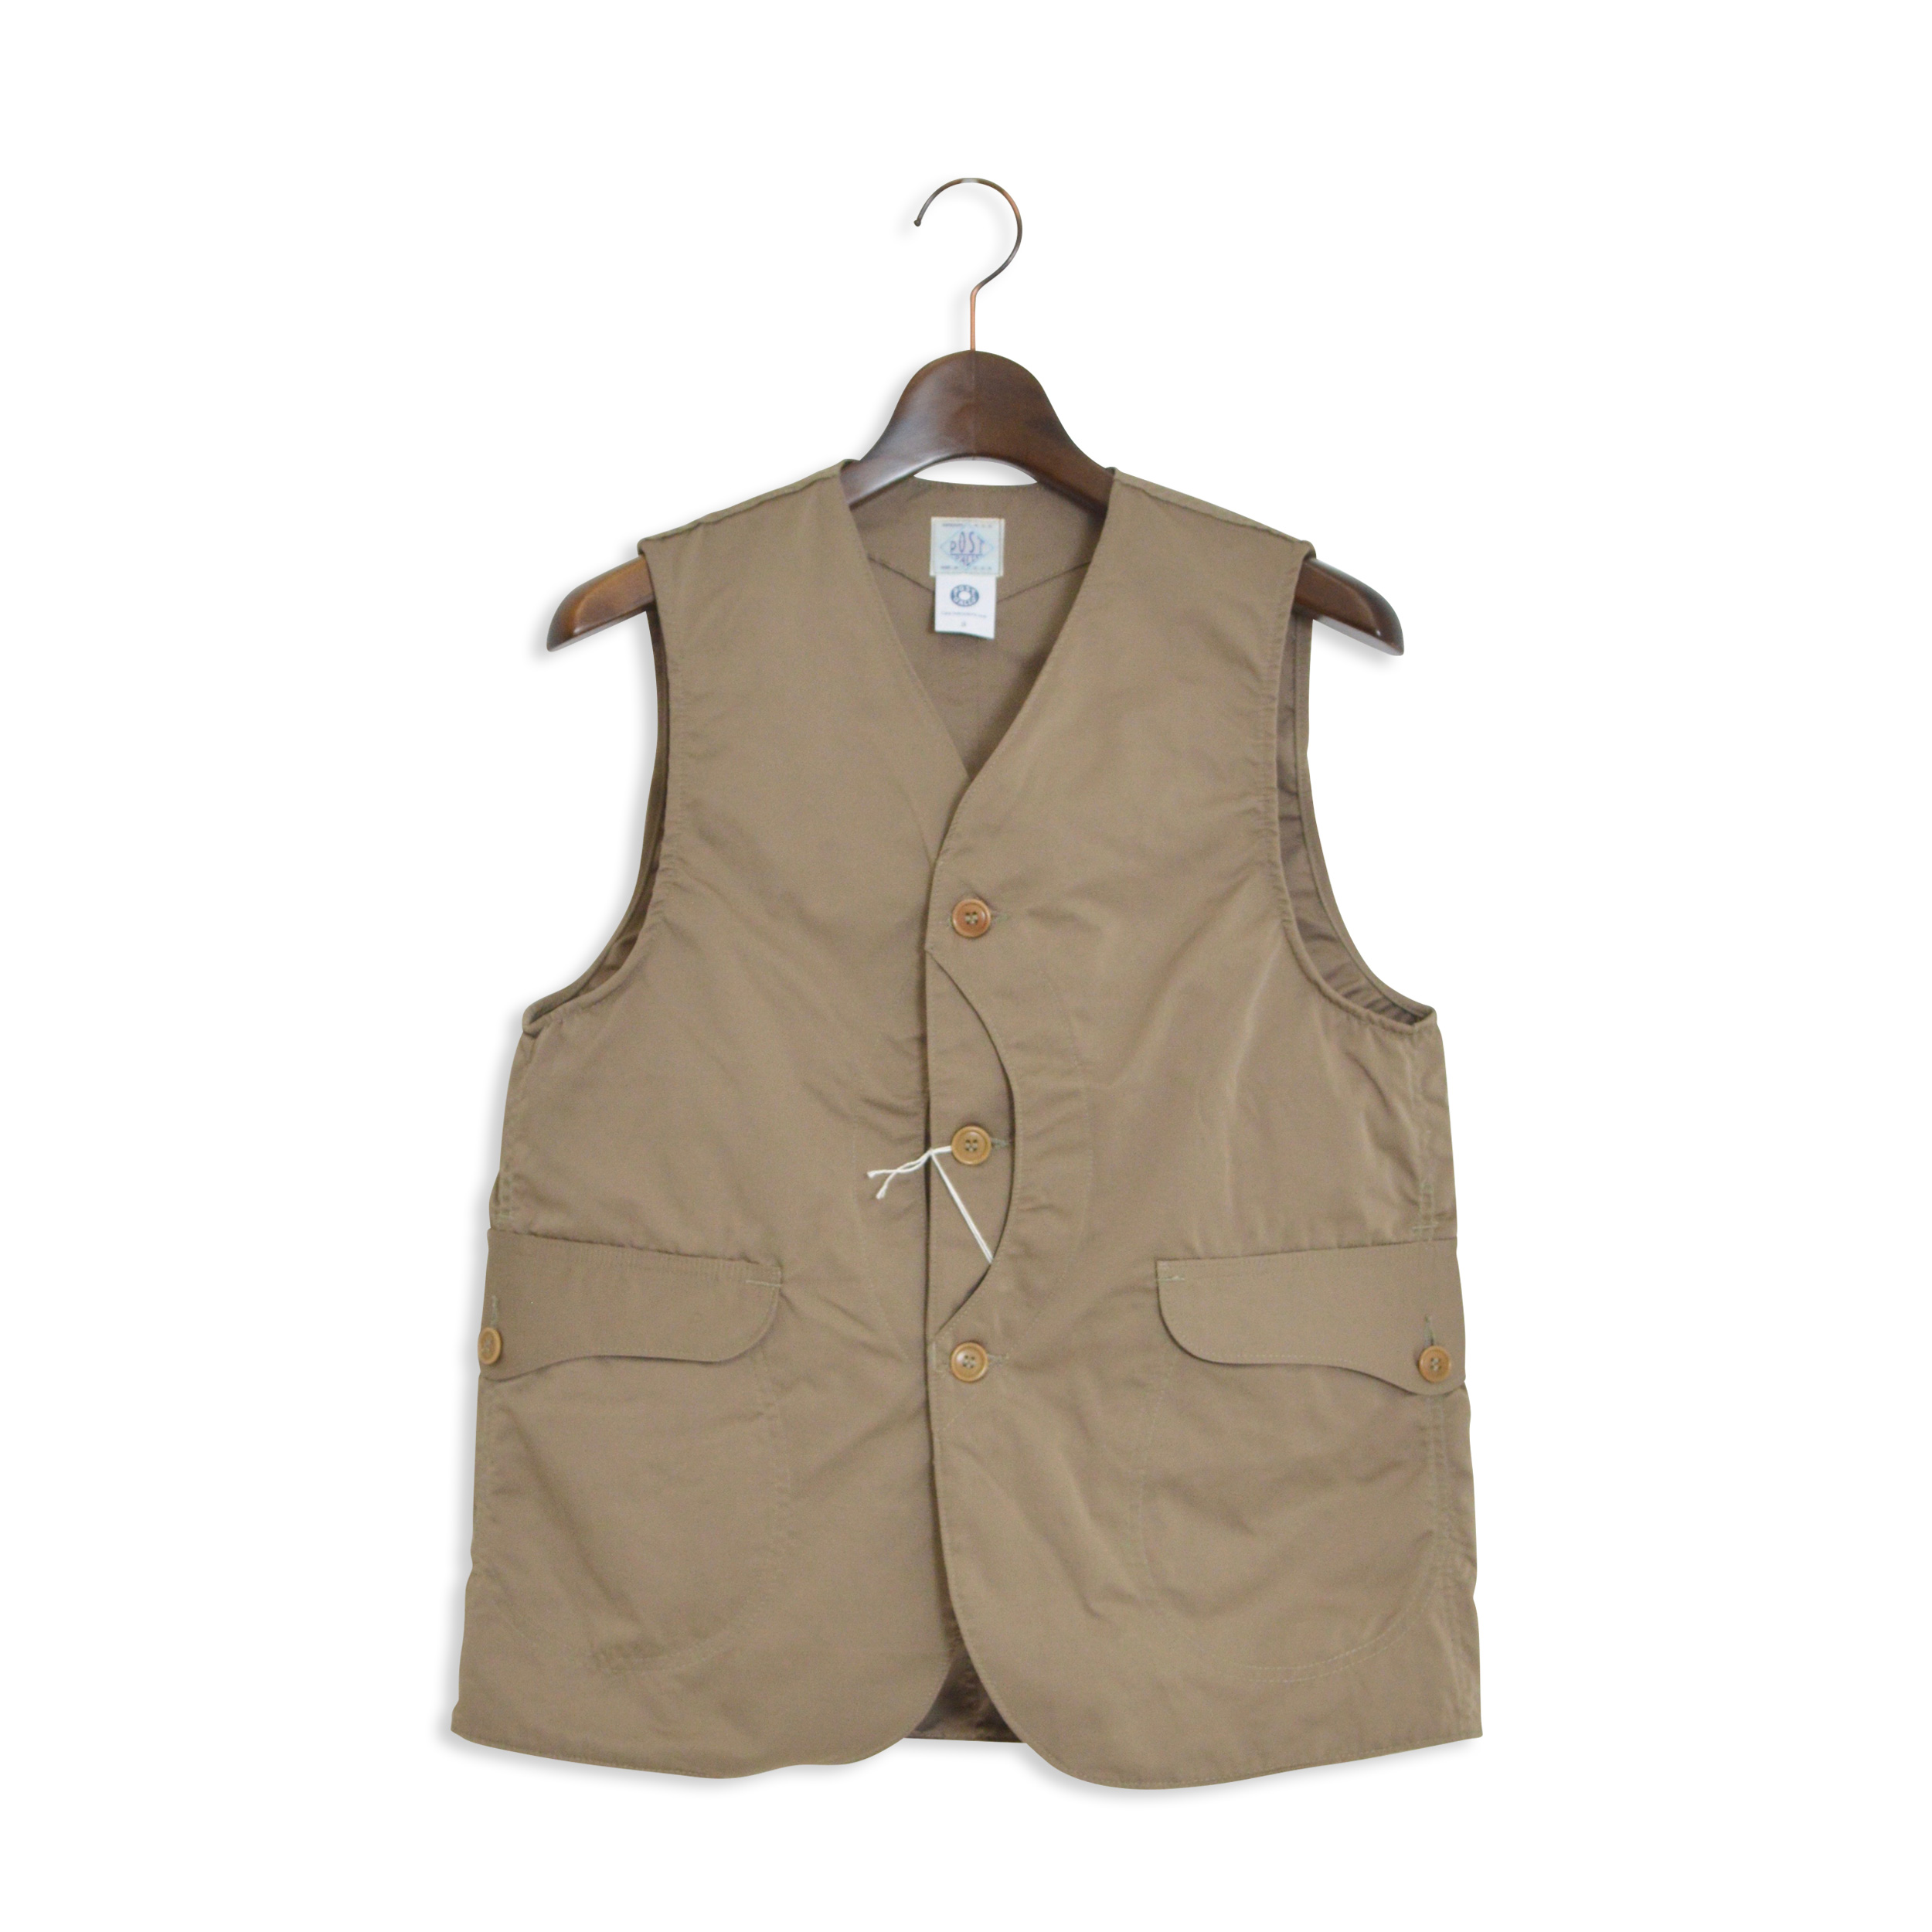 【35%OFF商品】【POST O'ALLS】POST OVERALLS(ポストオーバーオールズ)/1512 ROYAL TRAVELER/POLYESTER GROSGRAIN (1703)